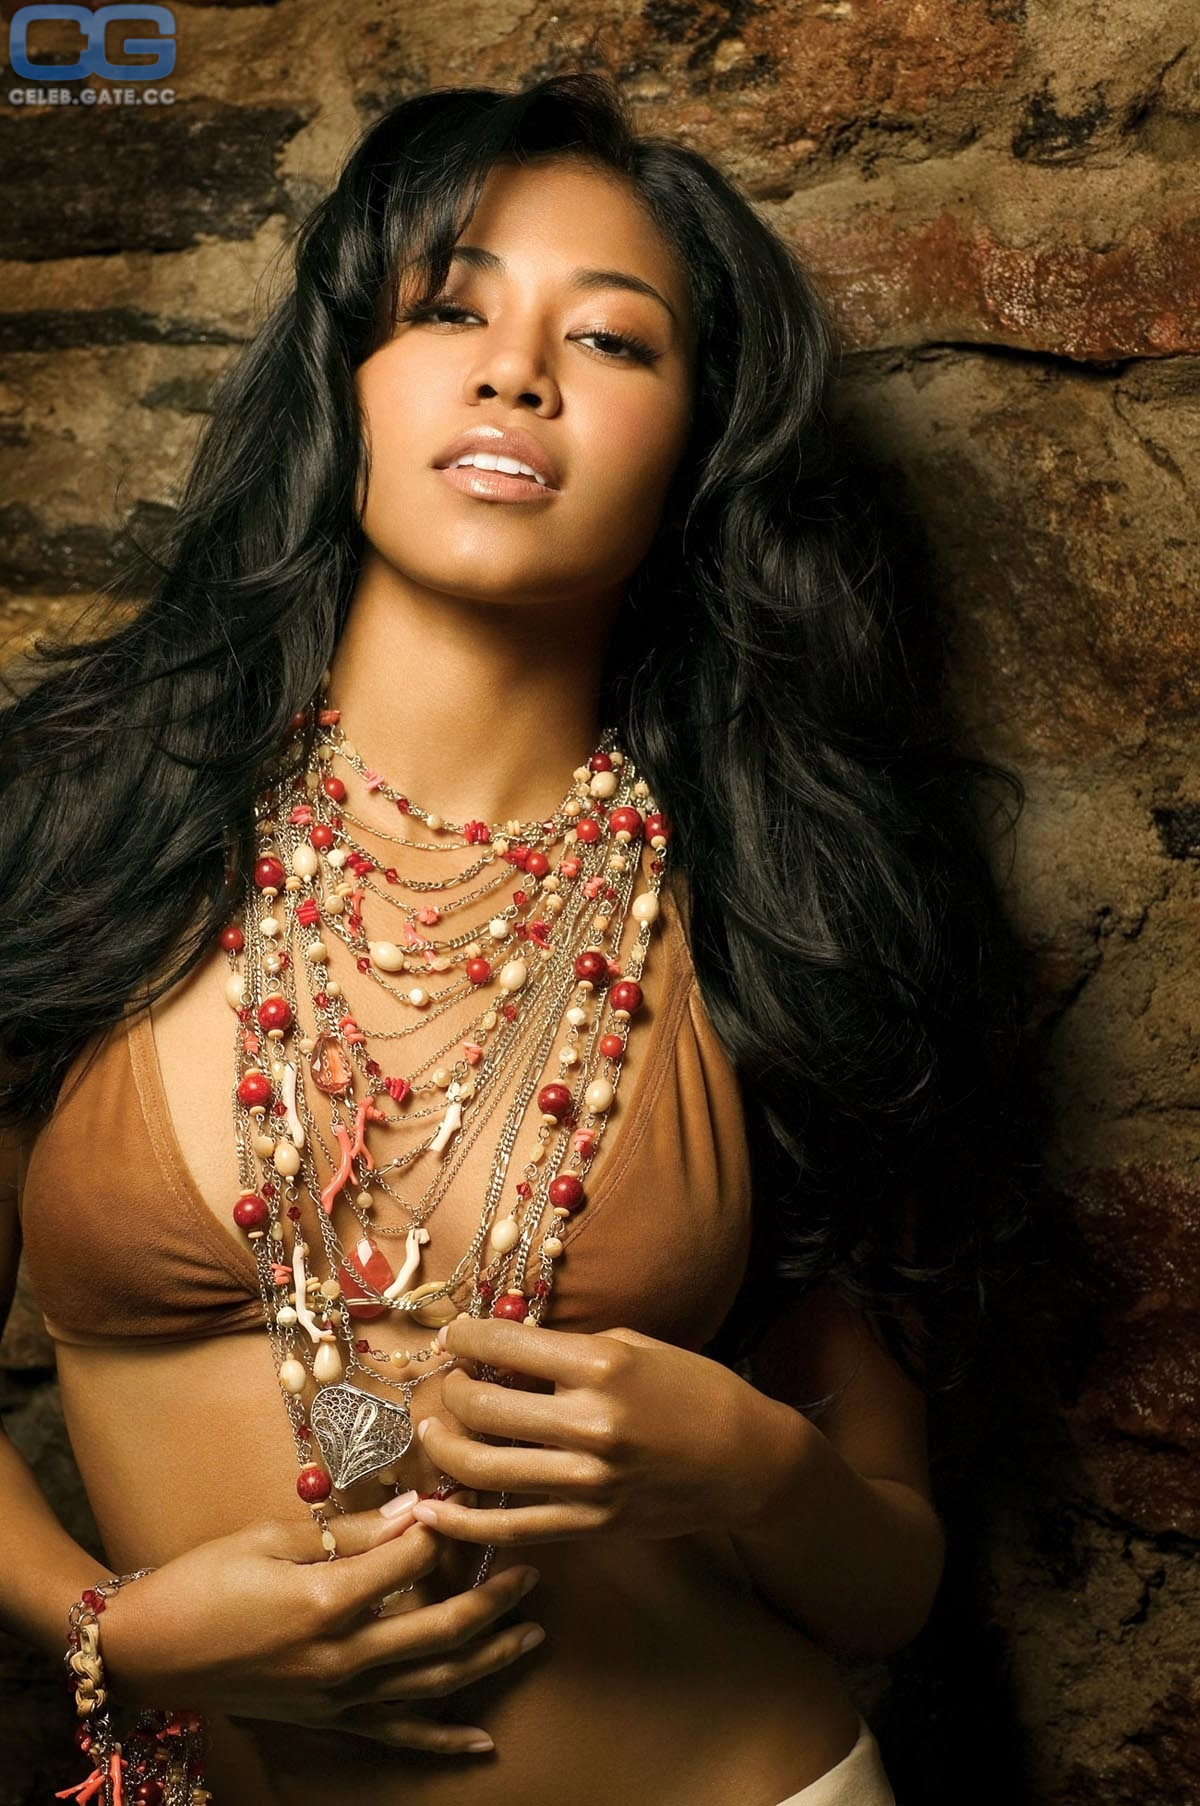 Nackt Amerie Rogers  Amerie 2021: